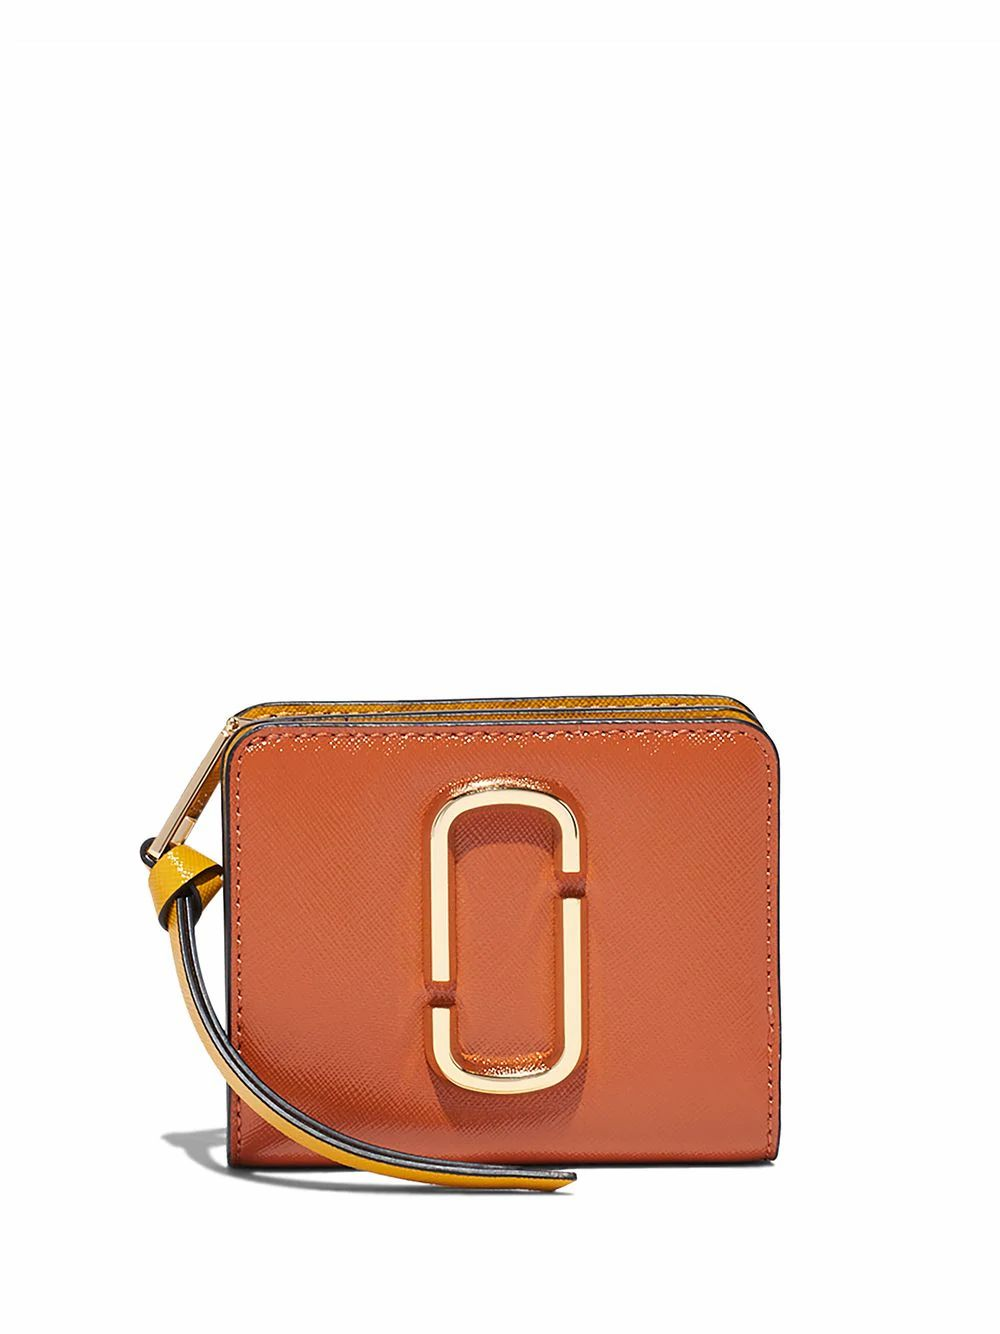 Marc Jacobs MARC JACOBS WOMEN'S M0013360911 BROWN LEATHER WALLET